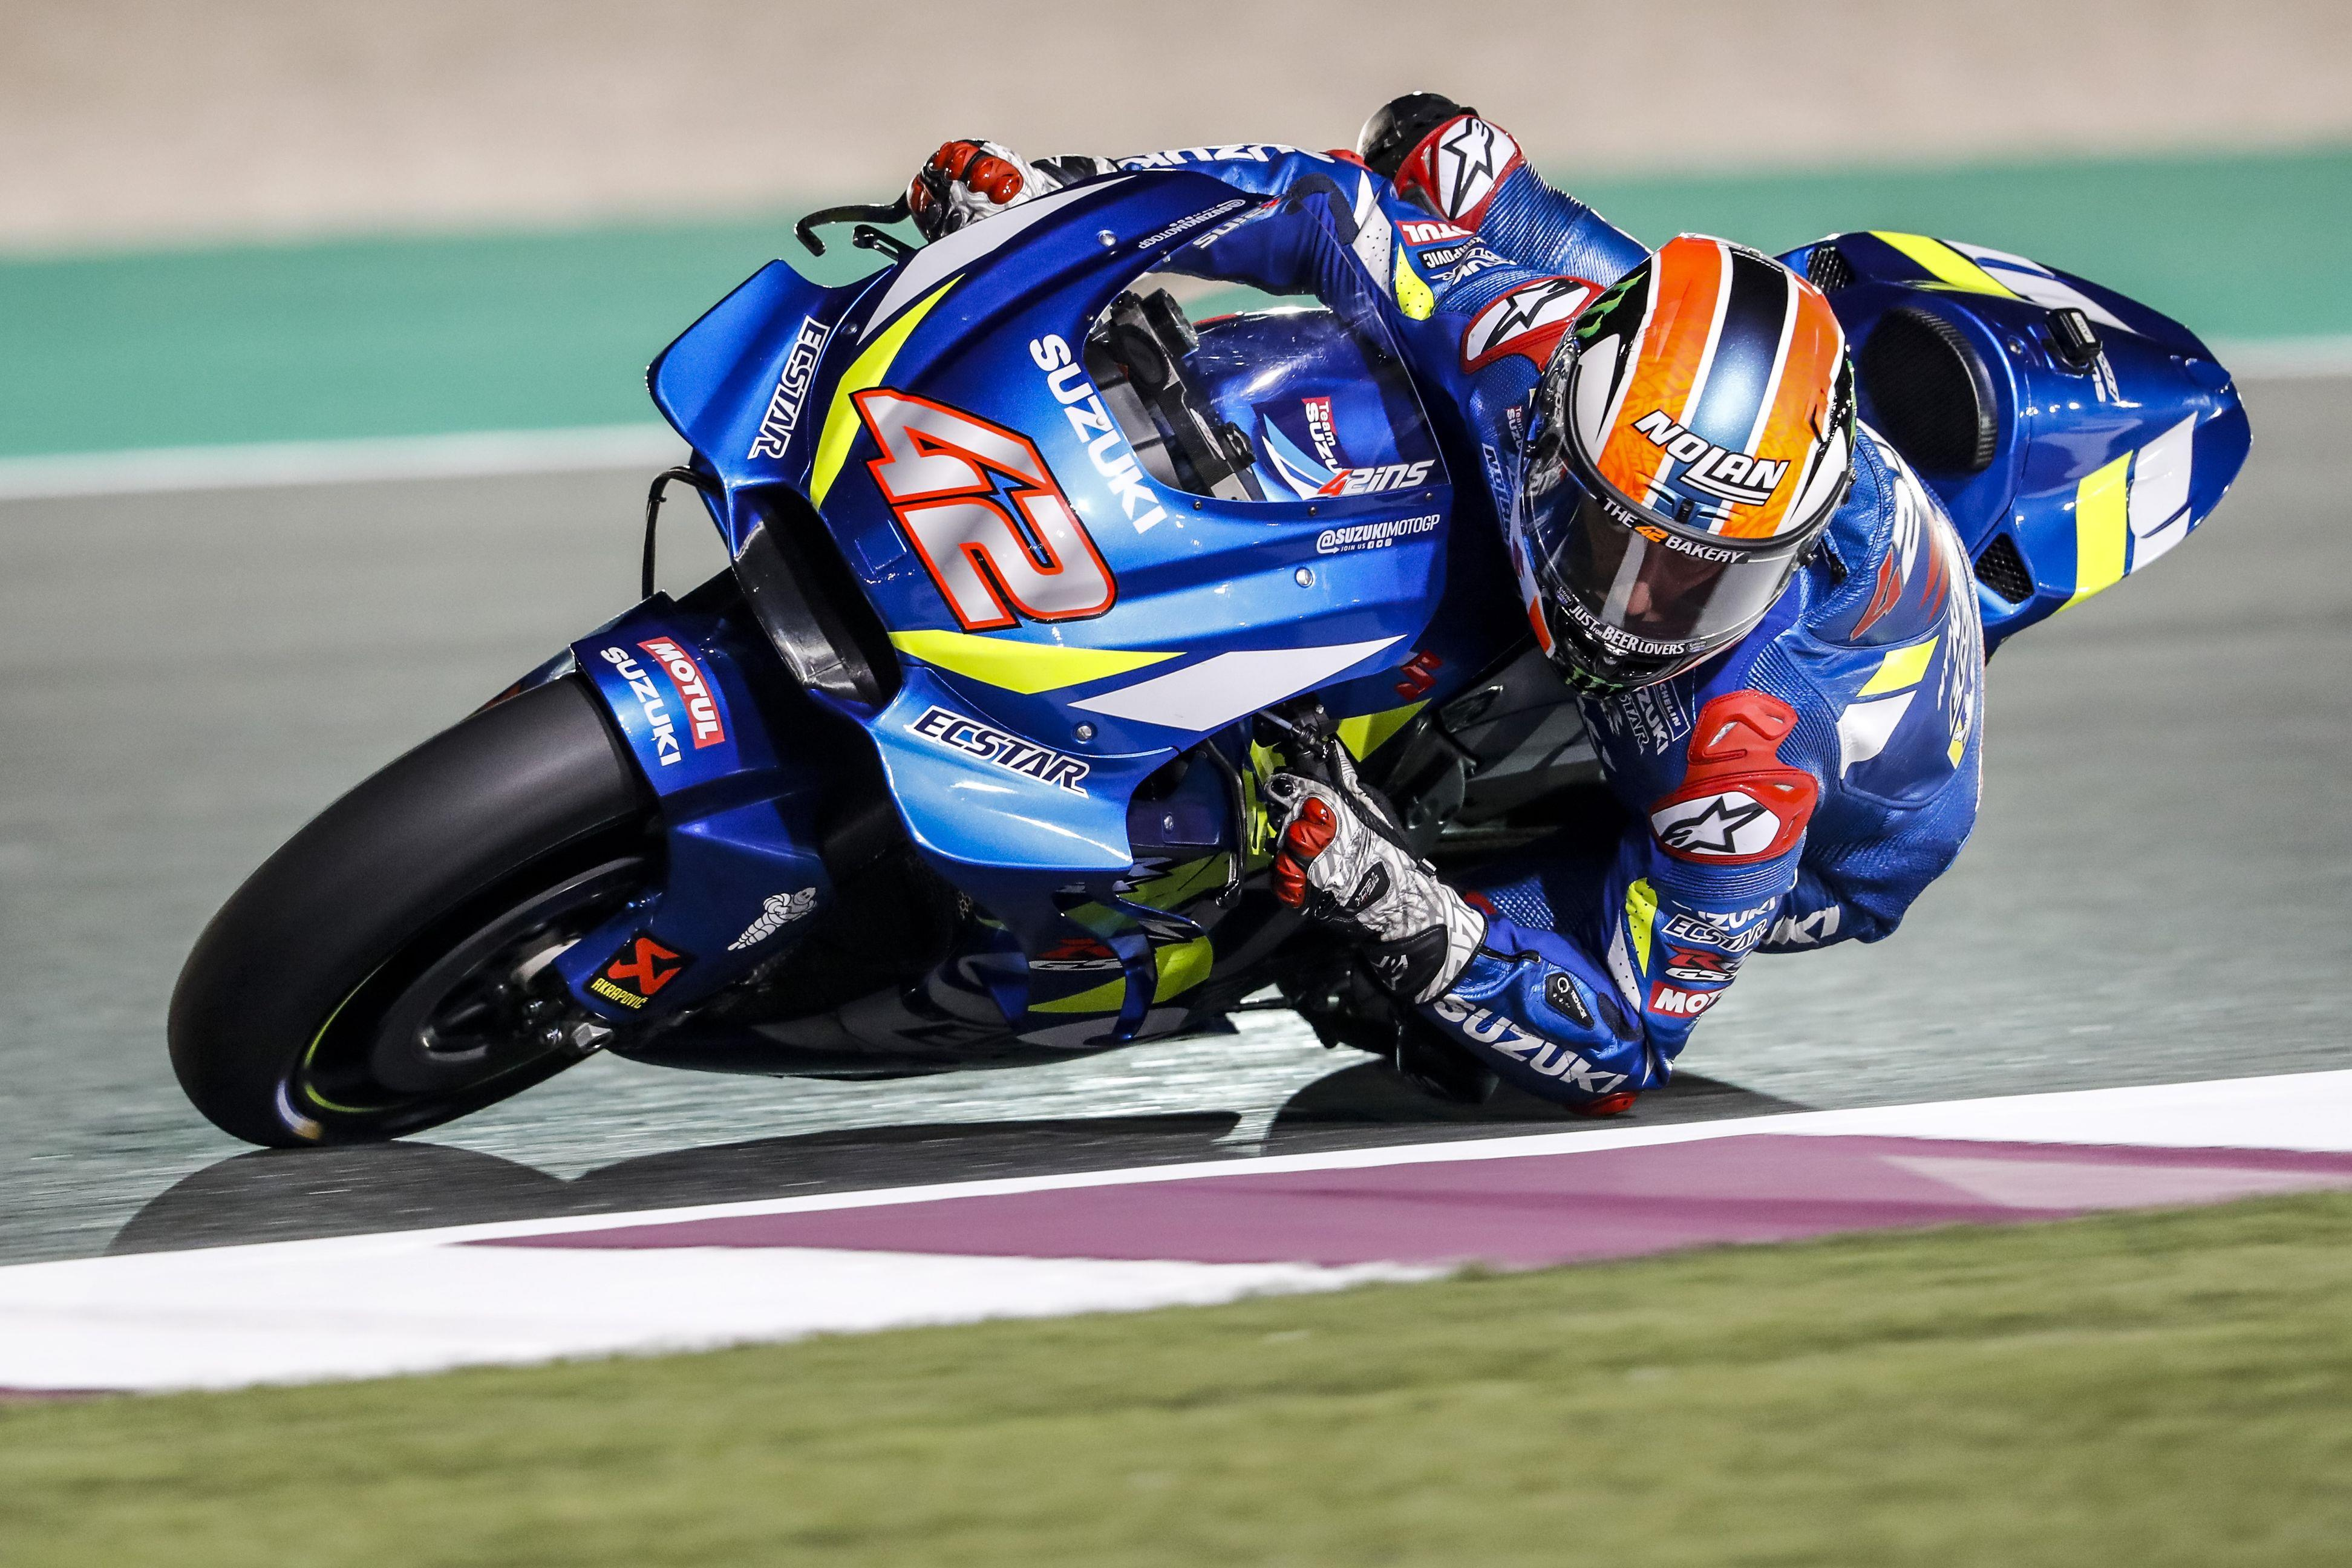 Qatar Day 2 Sees Rins Fly To The Top Of The Sheet